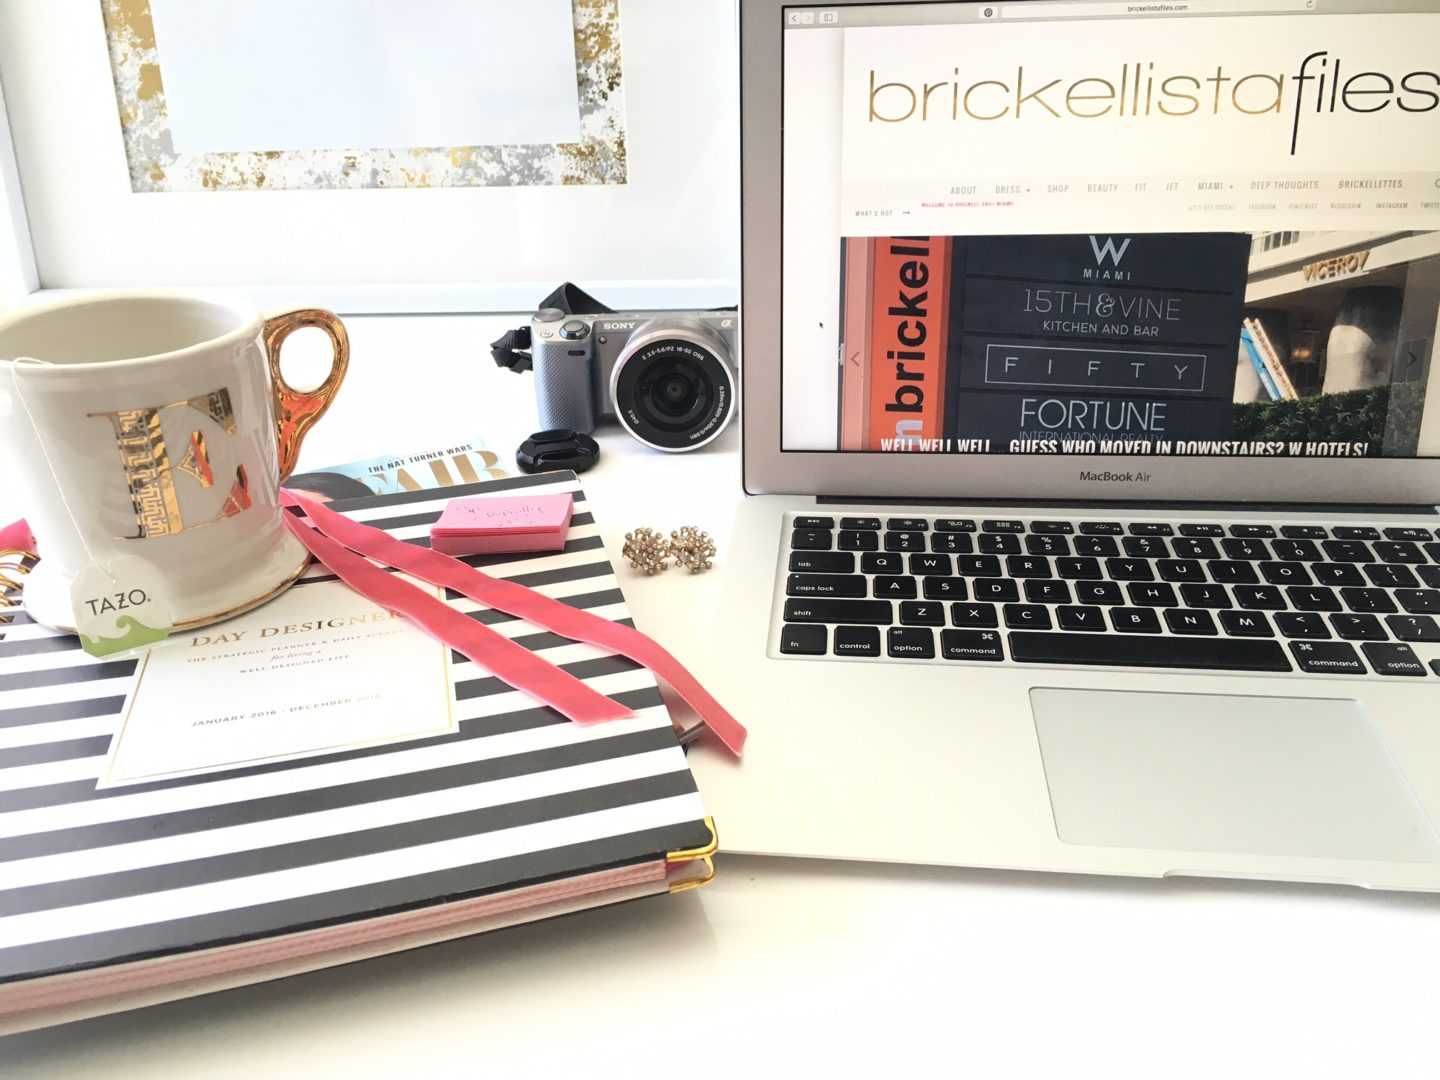 Blogspiration brought to you by Tazo!